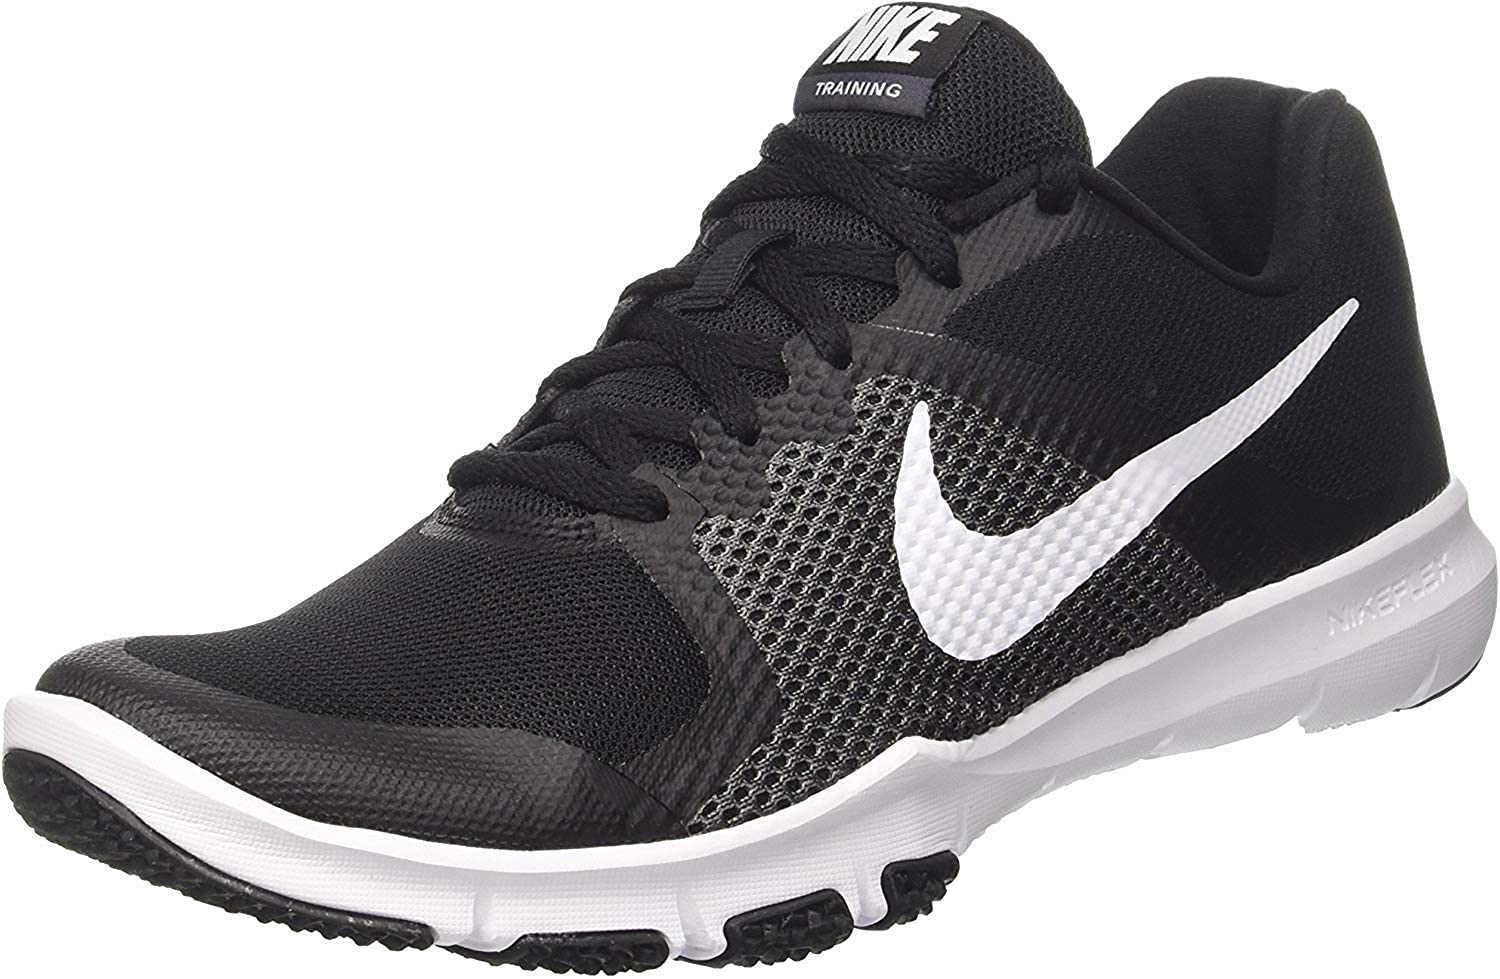 Image of Athletic NIKE Men's Flex Control Cross Trainer Shoes